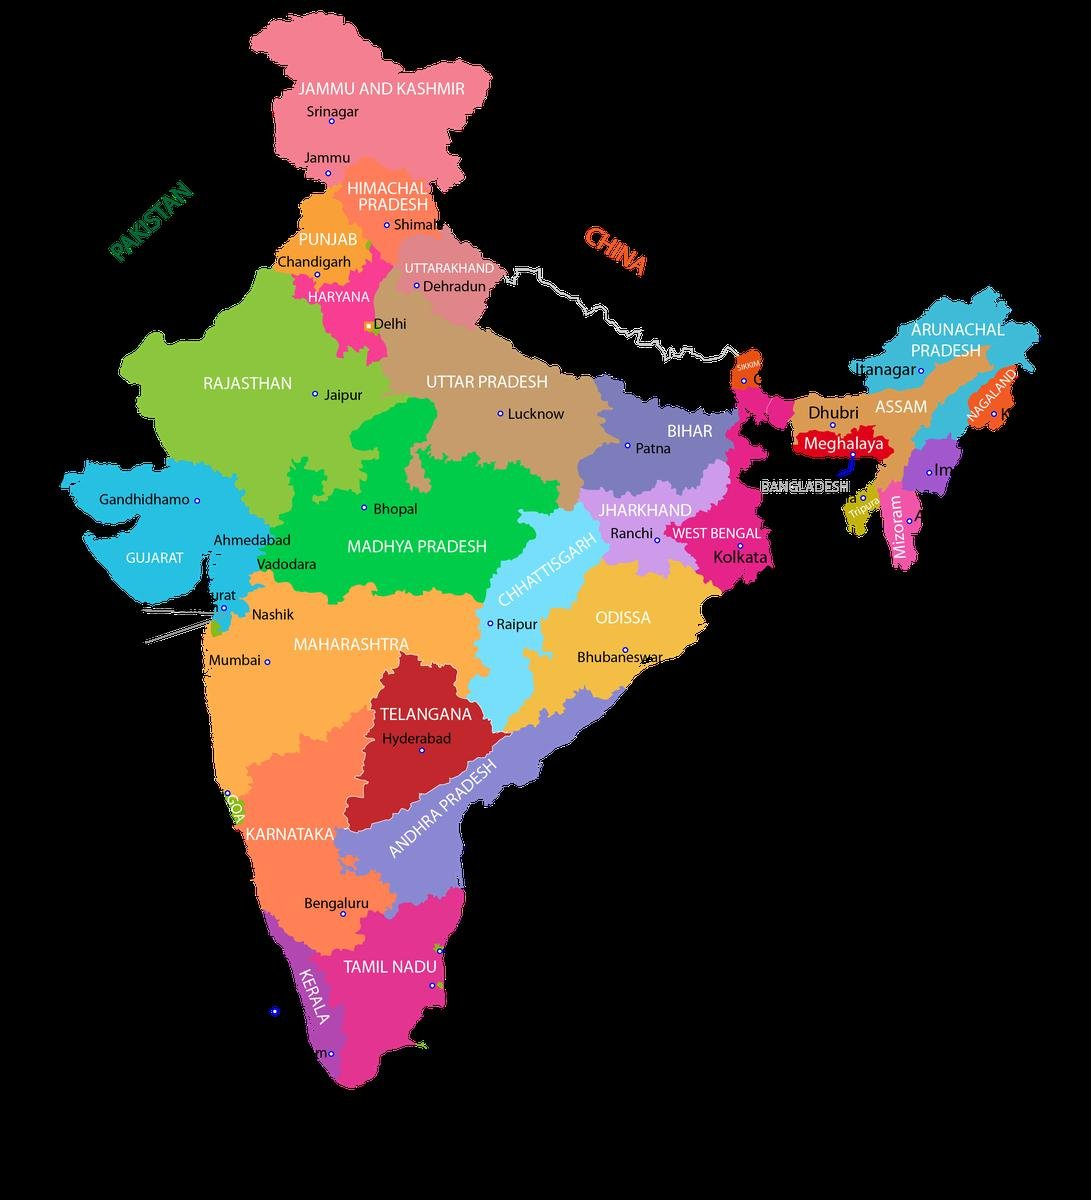 Gifts Delight LAMINATED 24x26 Poster: India Map Political, Map Of India, Political Map of India with Cities, Online Map of India, Map